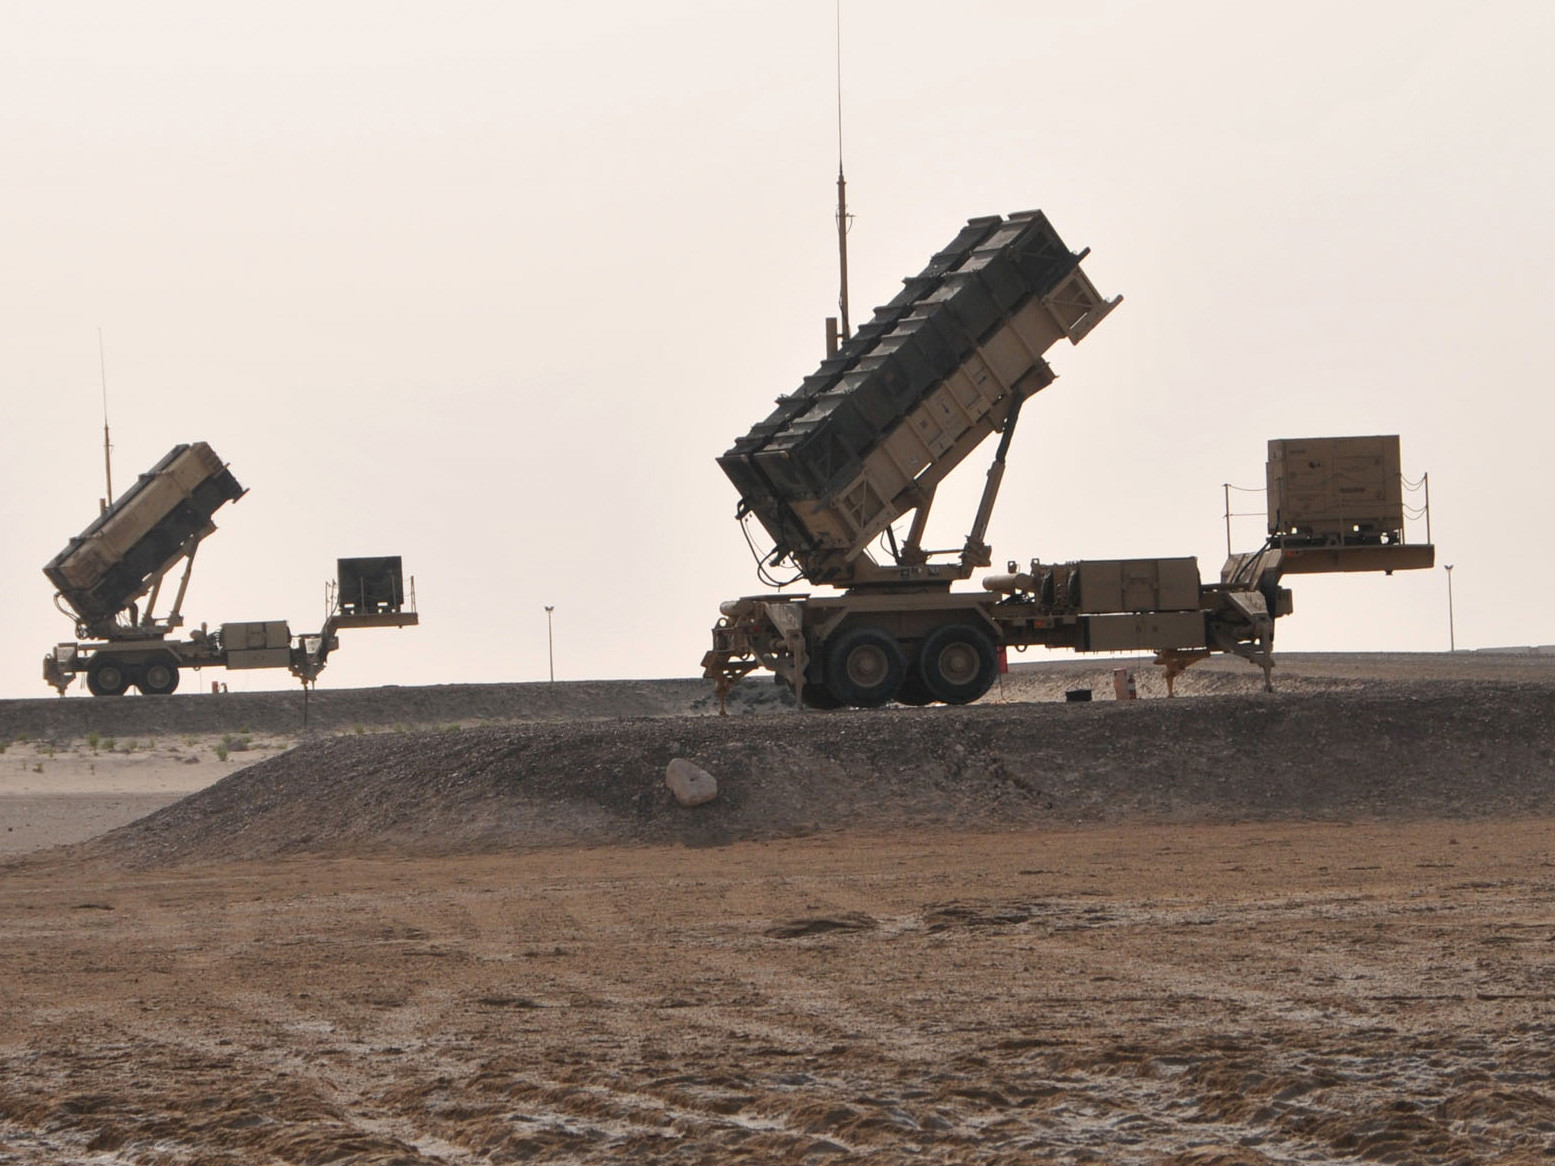 """<p><span>Фото: &copy;&nbsp;<a href=""""https://www.hanscom.af.mil/News/Article-Display/Article/846889/qatar-moves-one-step-closer-to-receiving-us-air-and-missile-defense-operations/"""" target=""""_blank"""" data-noload="""""""" data-ved=""""2ahUKEwiY_tqm76vgAhVG1ywKHbpHBhcQjB16BAgBEAQ"""">Hanscom Air Force Base</a></span></p>"""